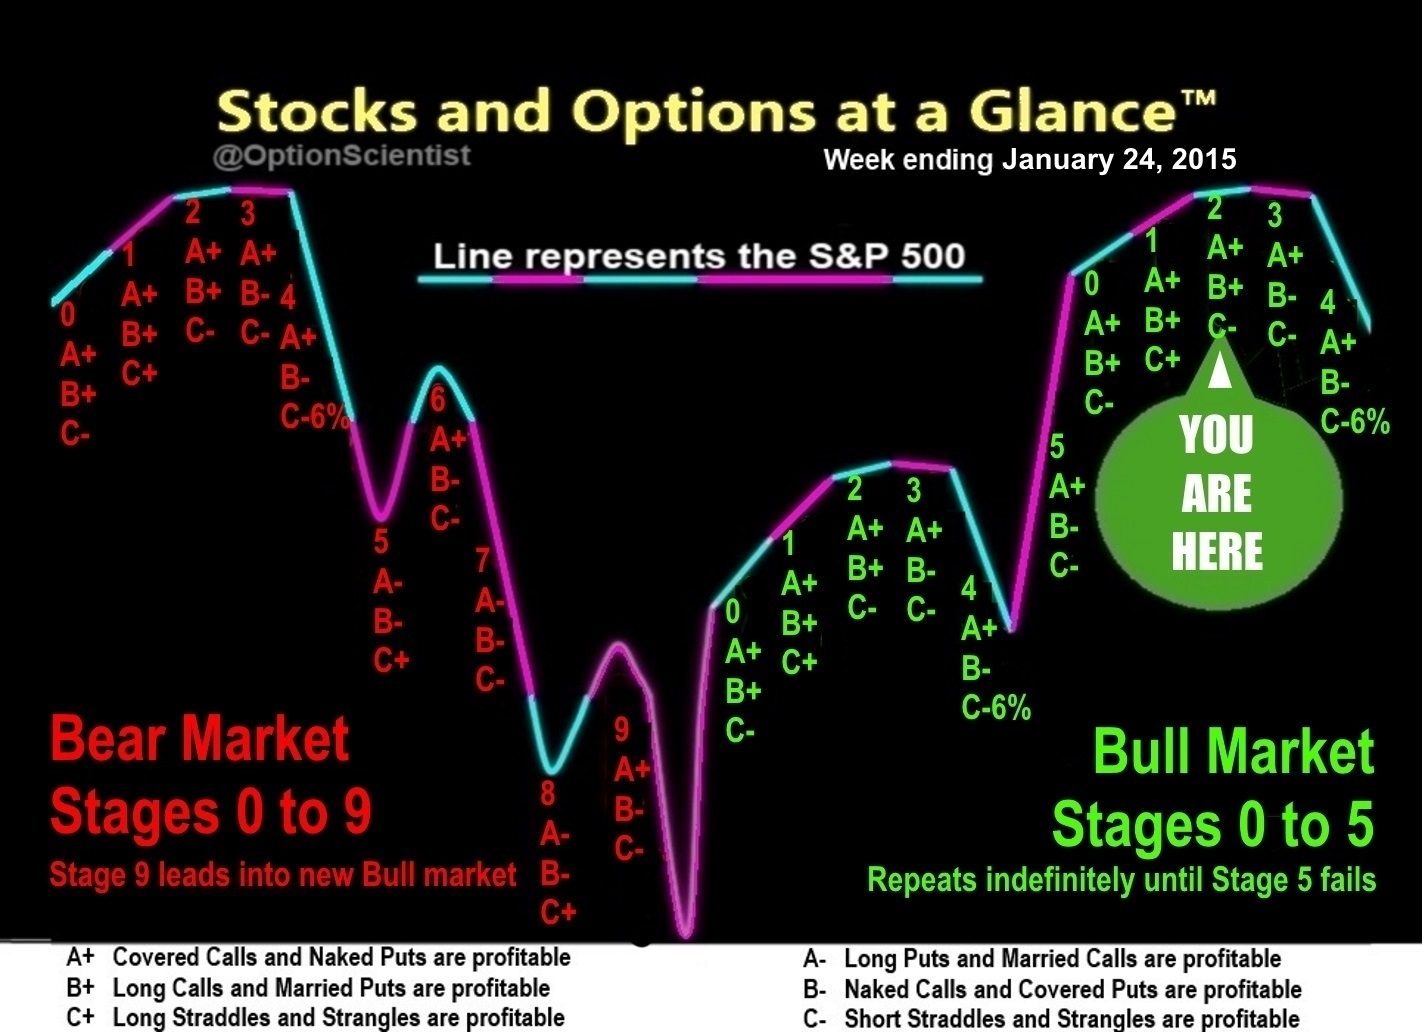 Stocks and Options at a Glance 01-24-15